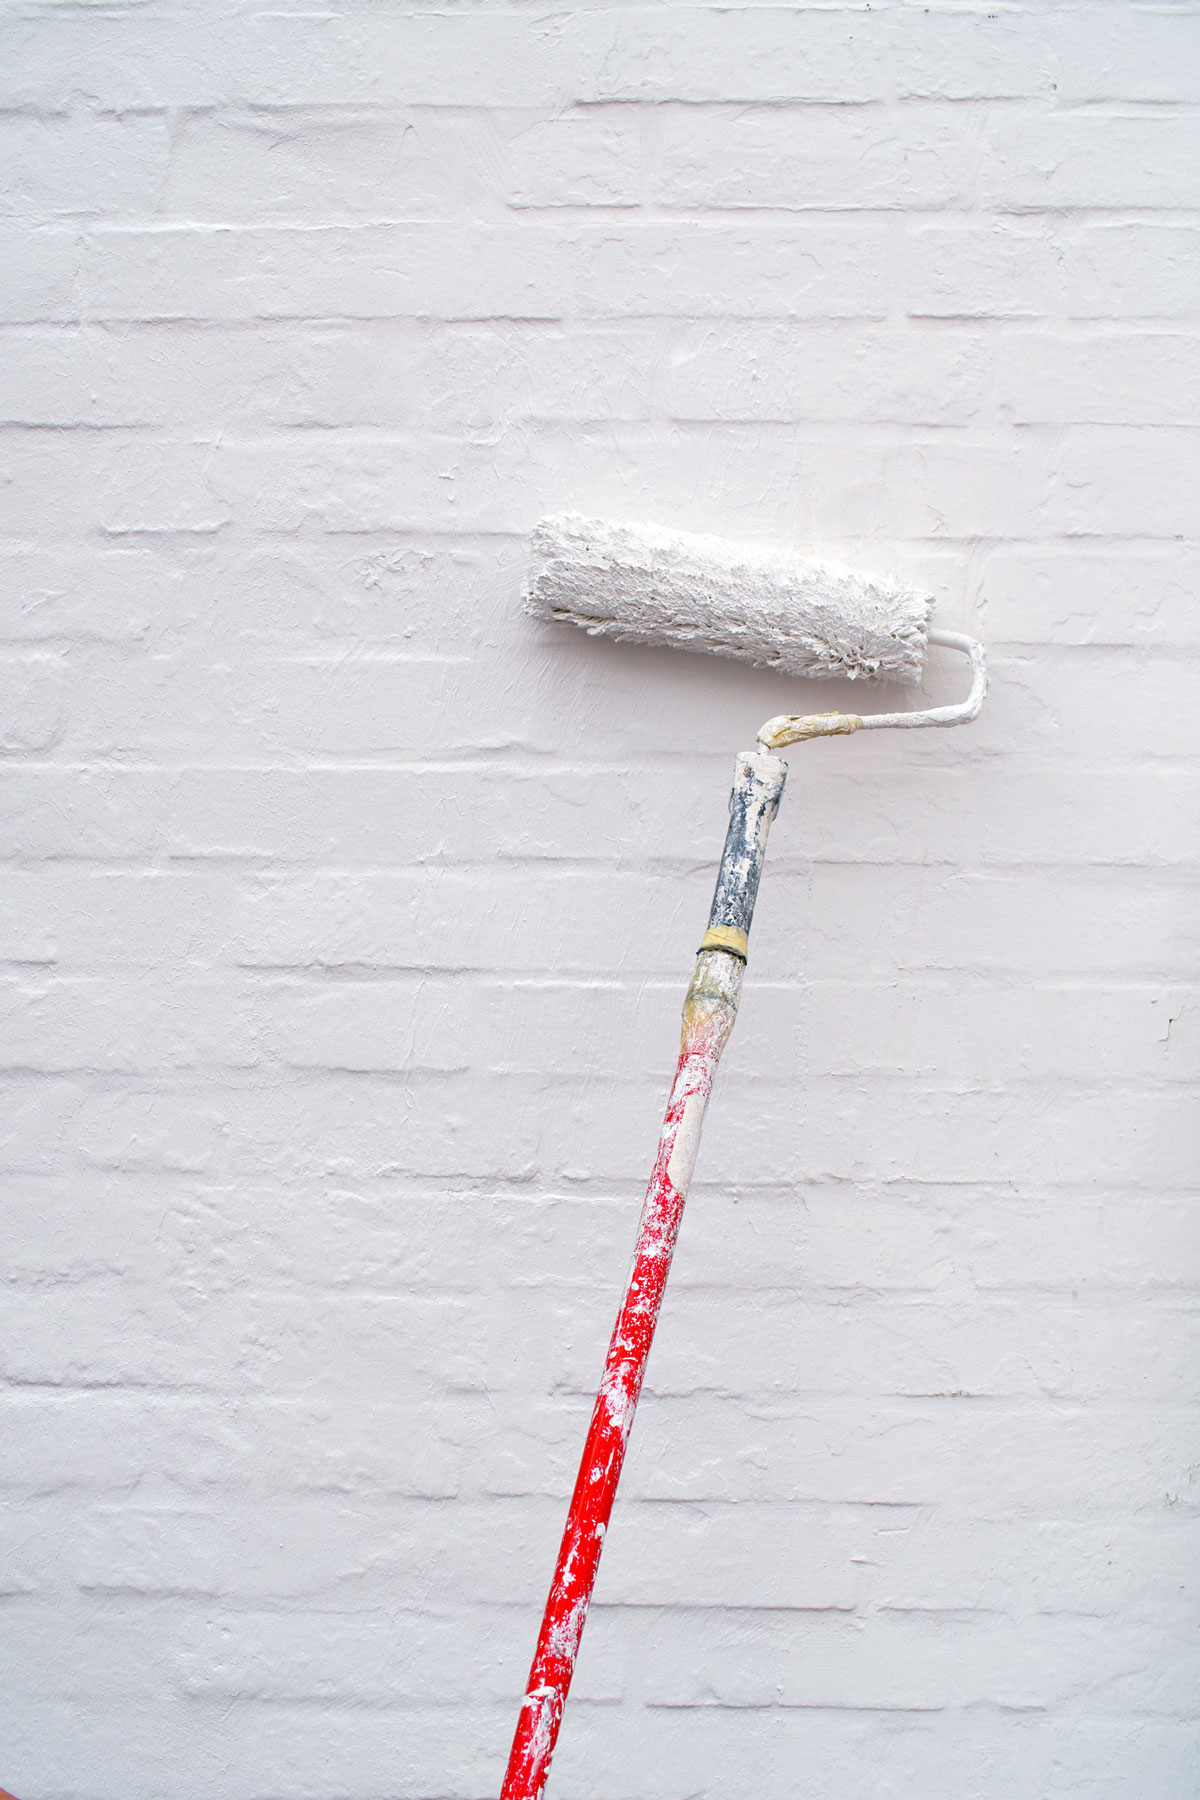 Painting exterior brick white with a roller